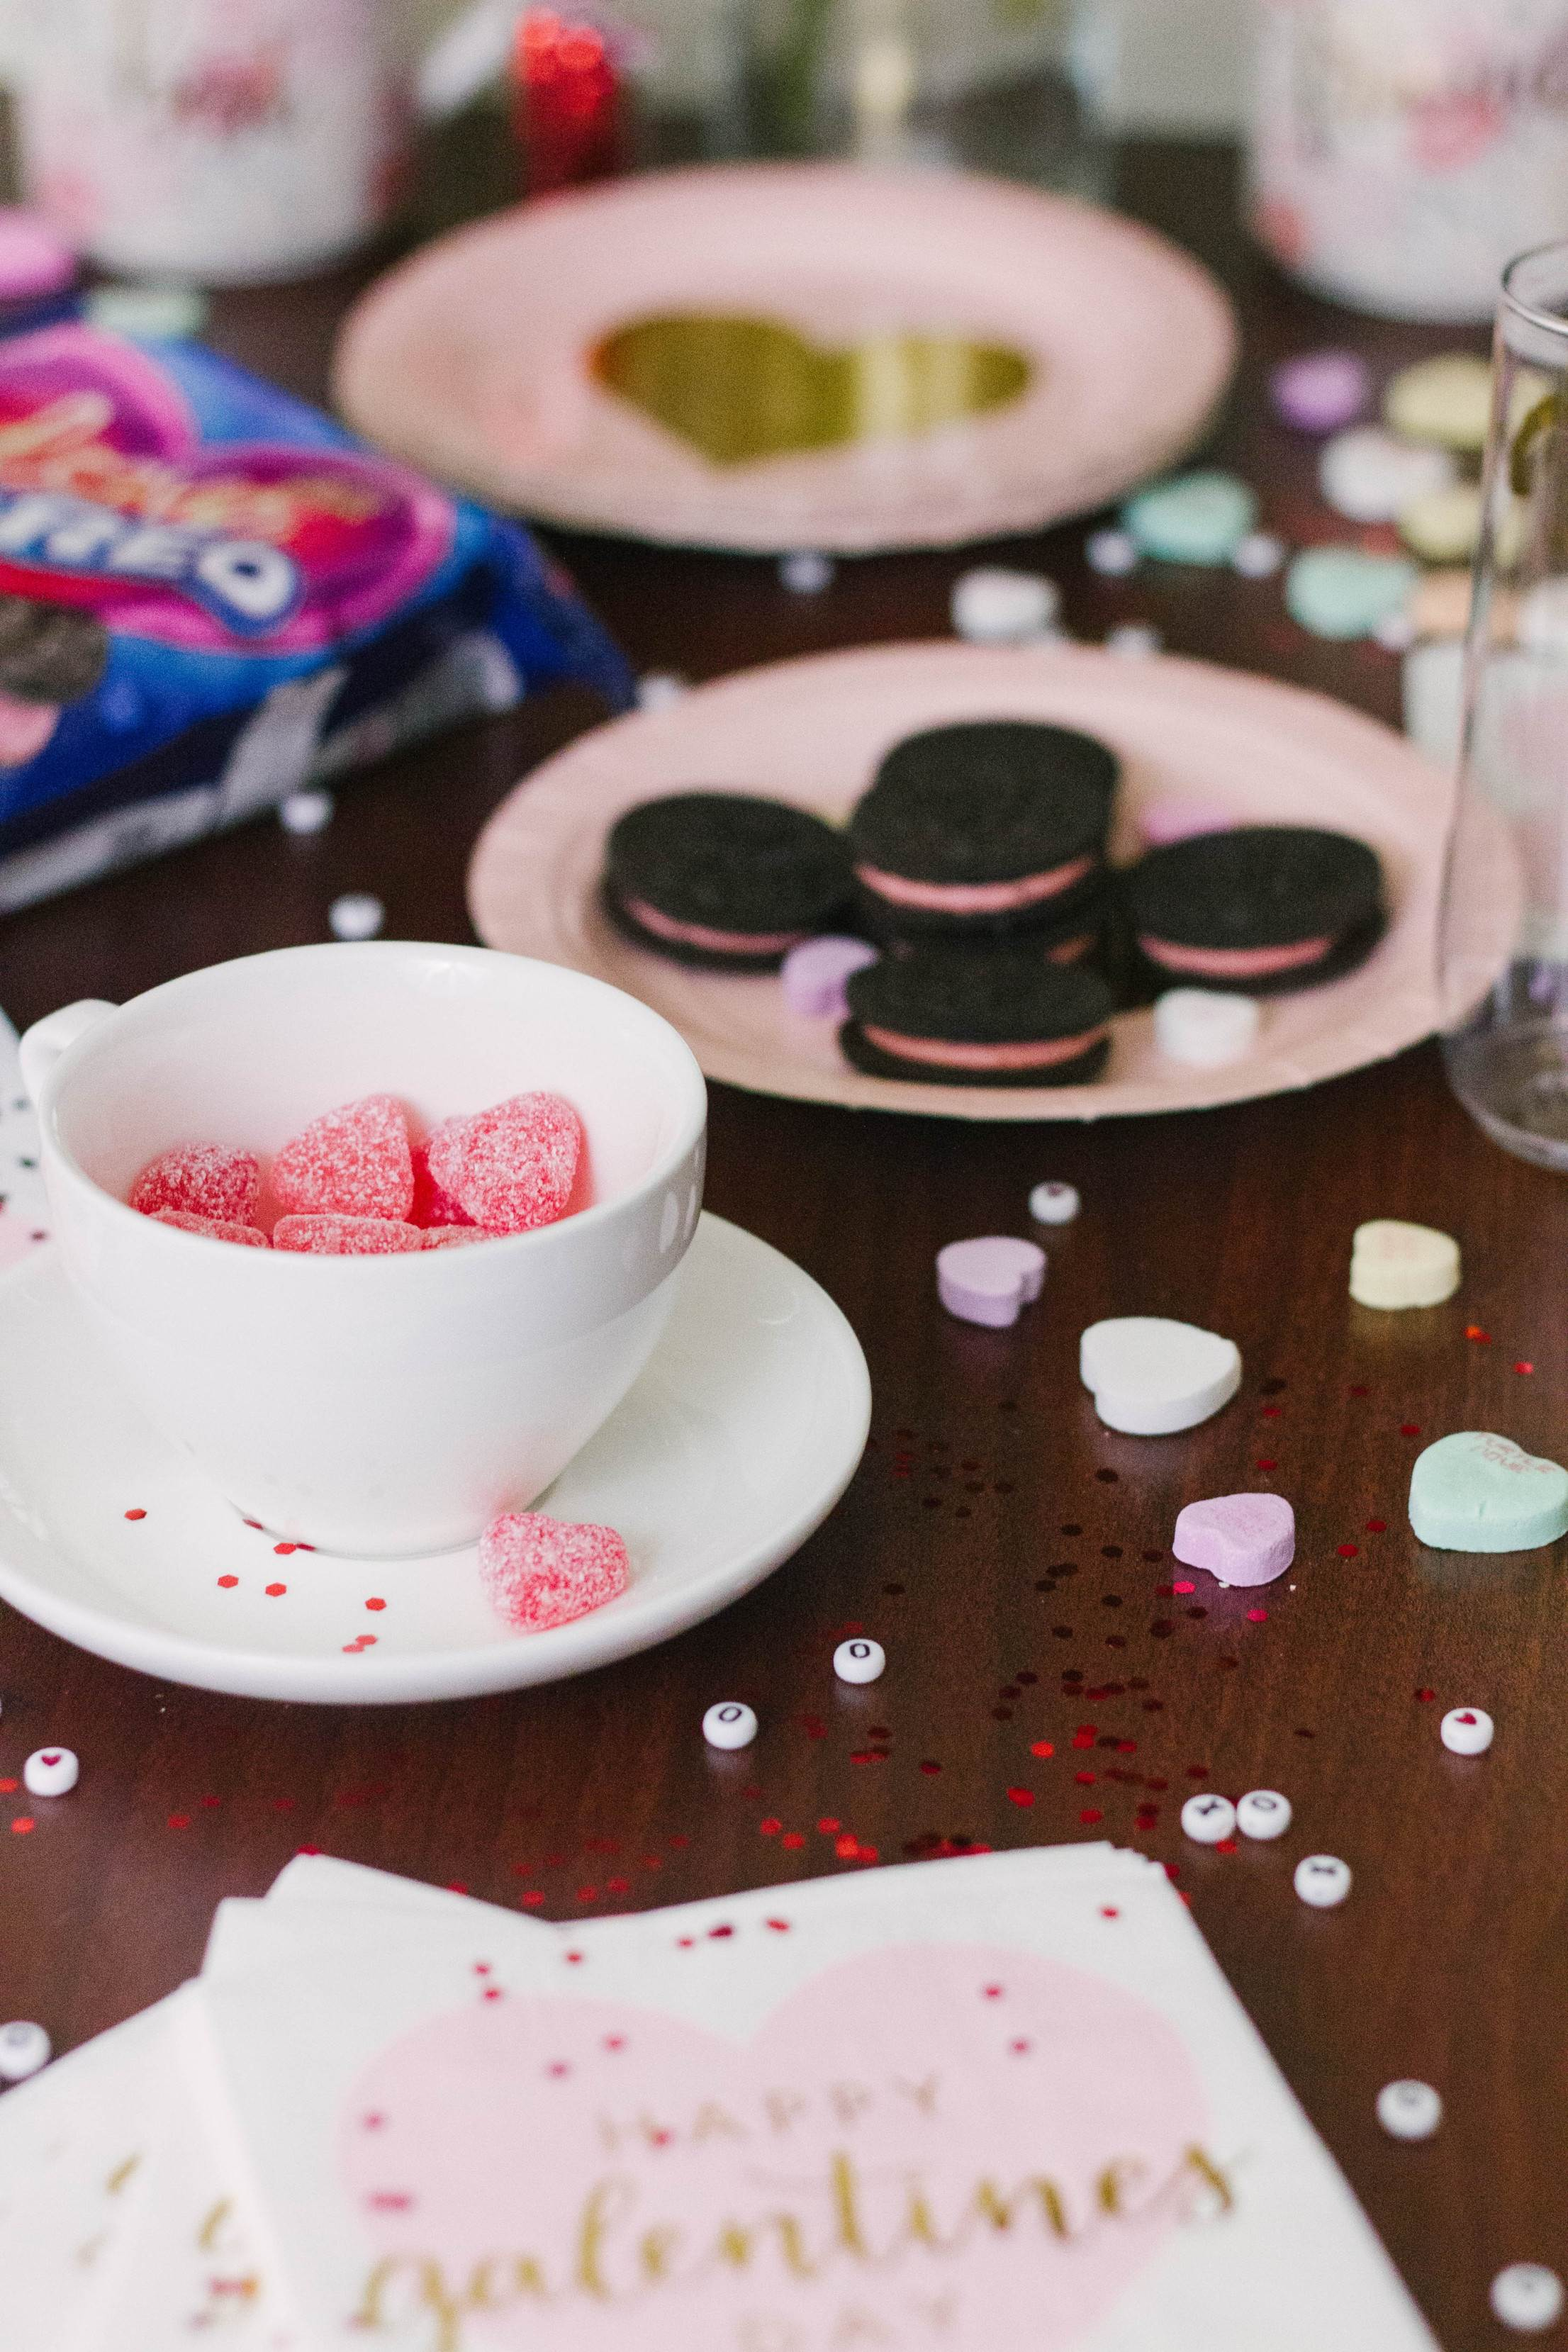 5 Ways to Spend Galentine's Day (Alone or With Friends)